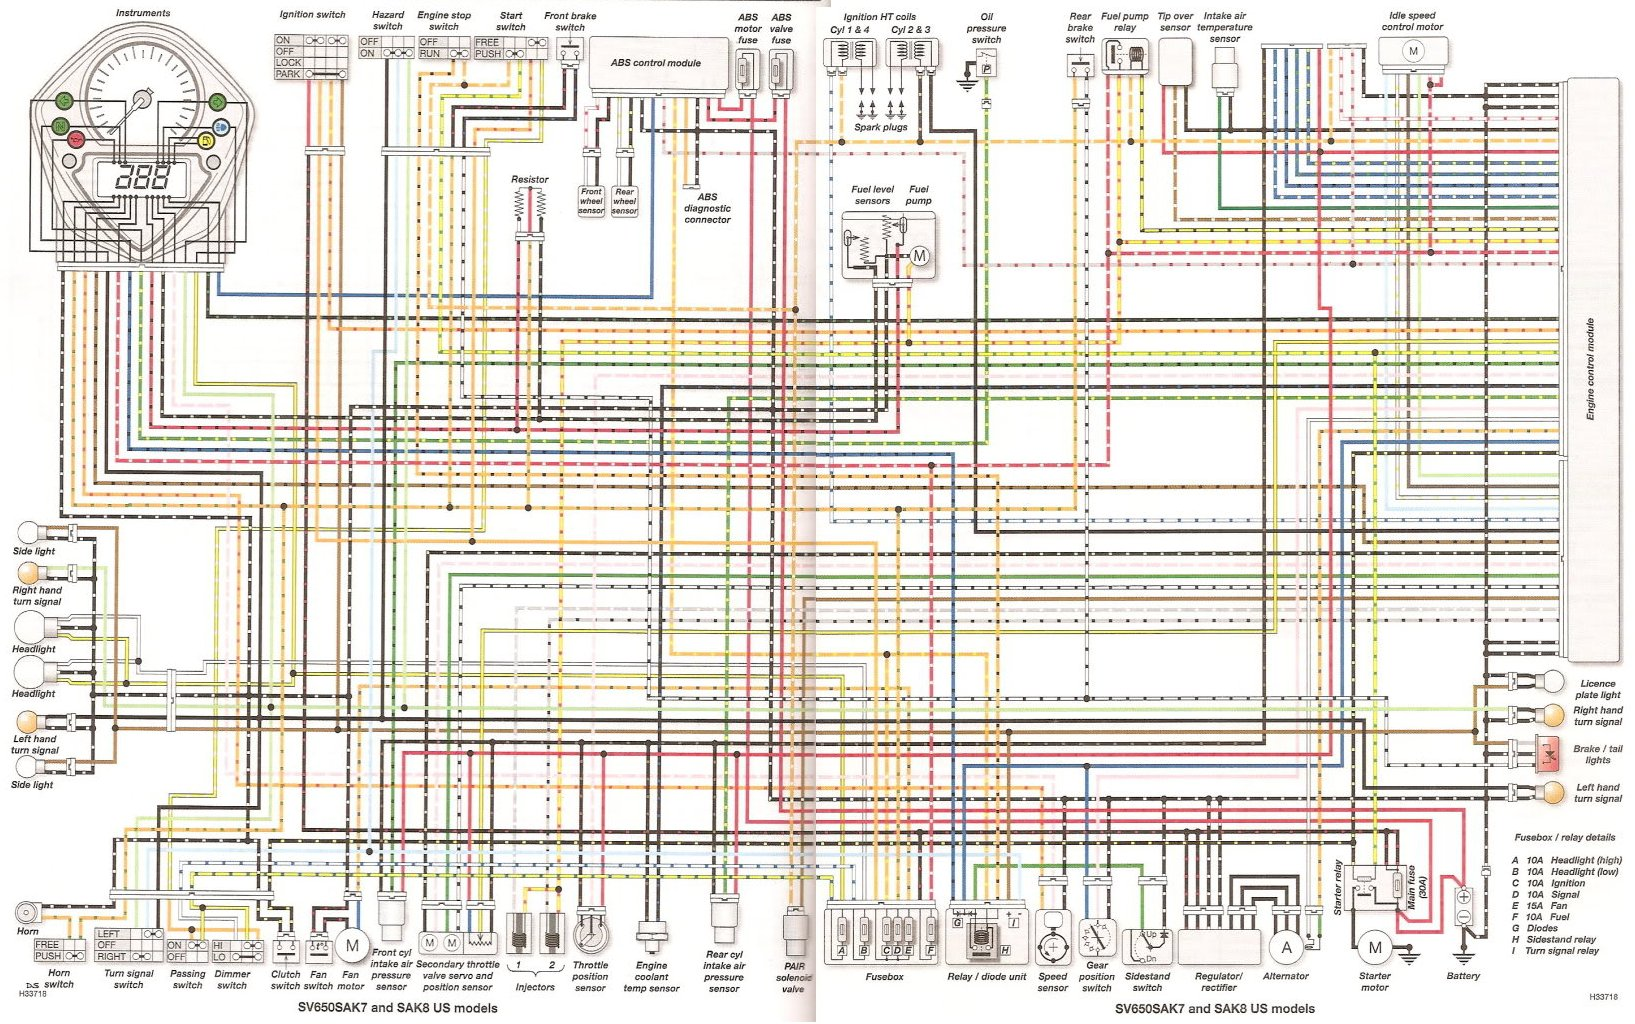 sv650sa_2007 2008_color_wiring 2006 cbr600rr wiring diagram vt1100 wiring diagram \u2022 free wiring 2008 suzuki gsxr 600 wiring diagram at n-0.co